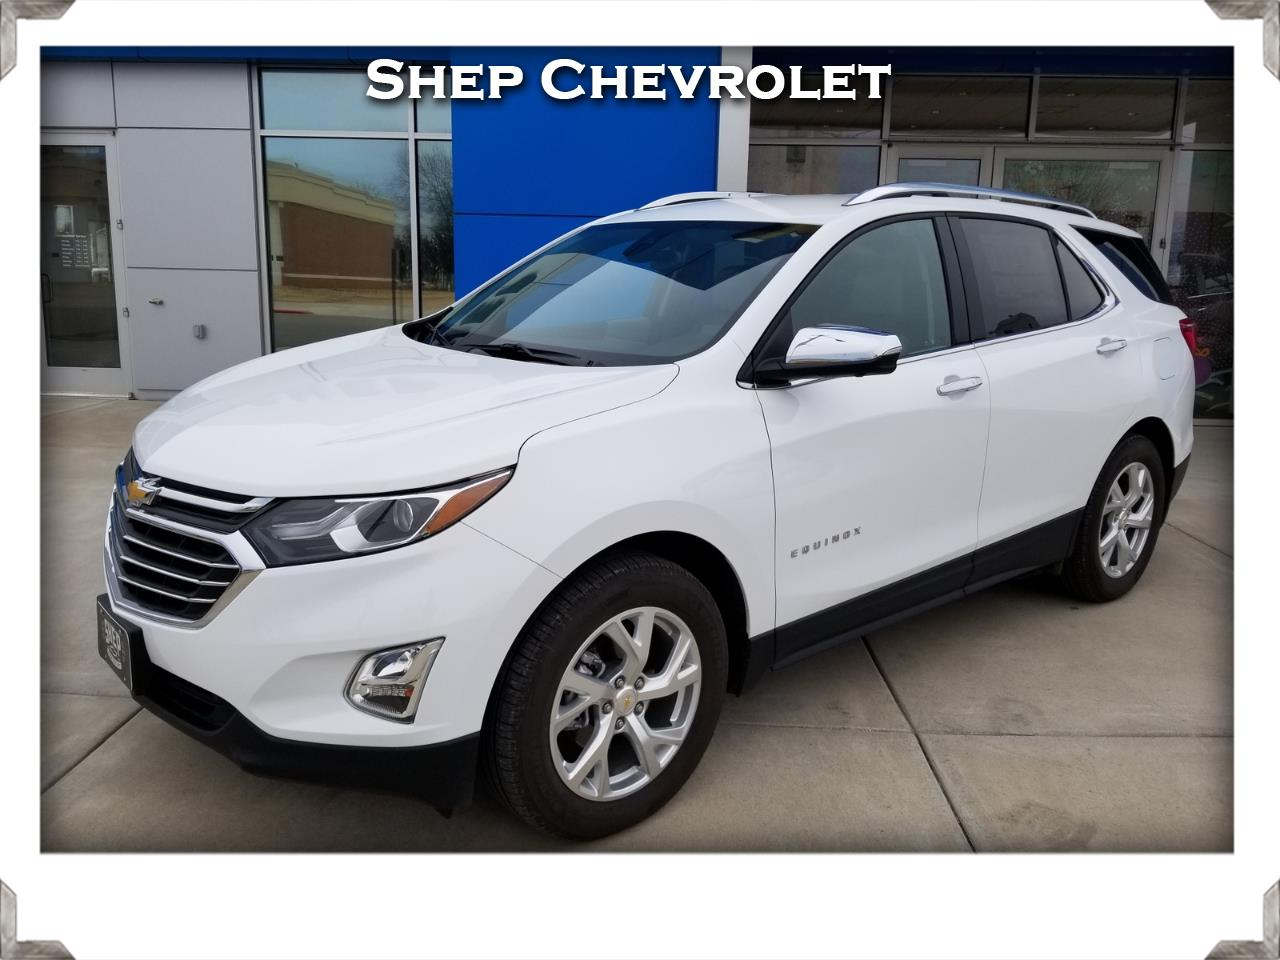 2019 Chevrolet Equinox Premier 1.5 Turbo FWD (DEMO)